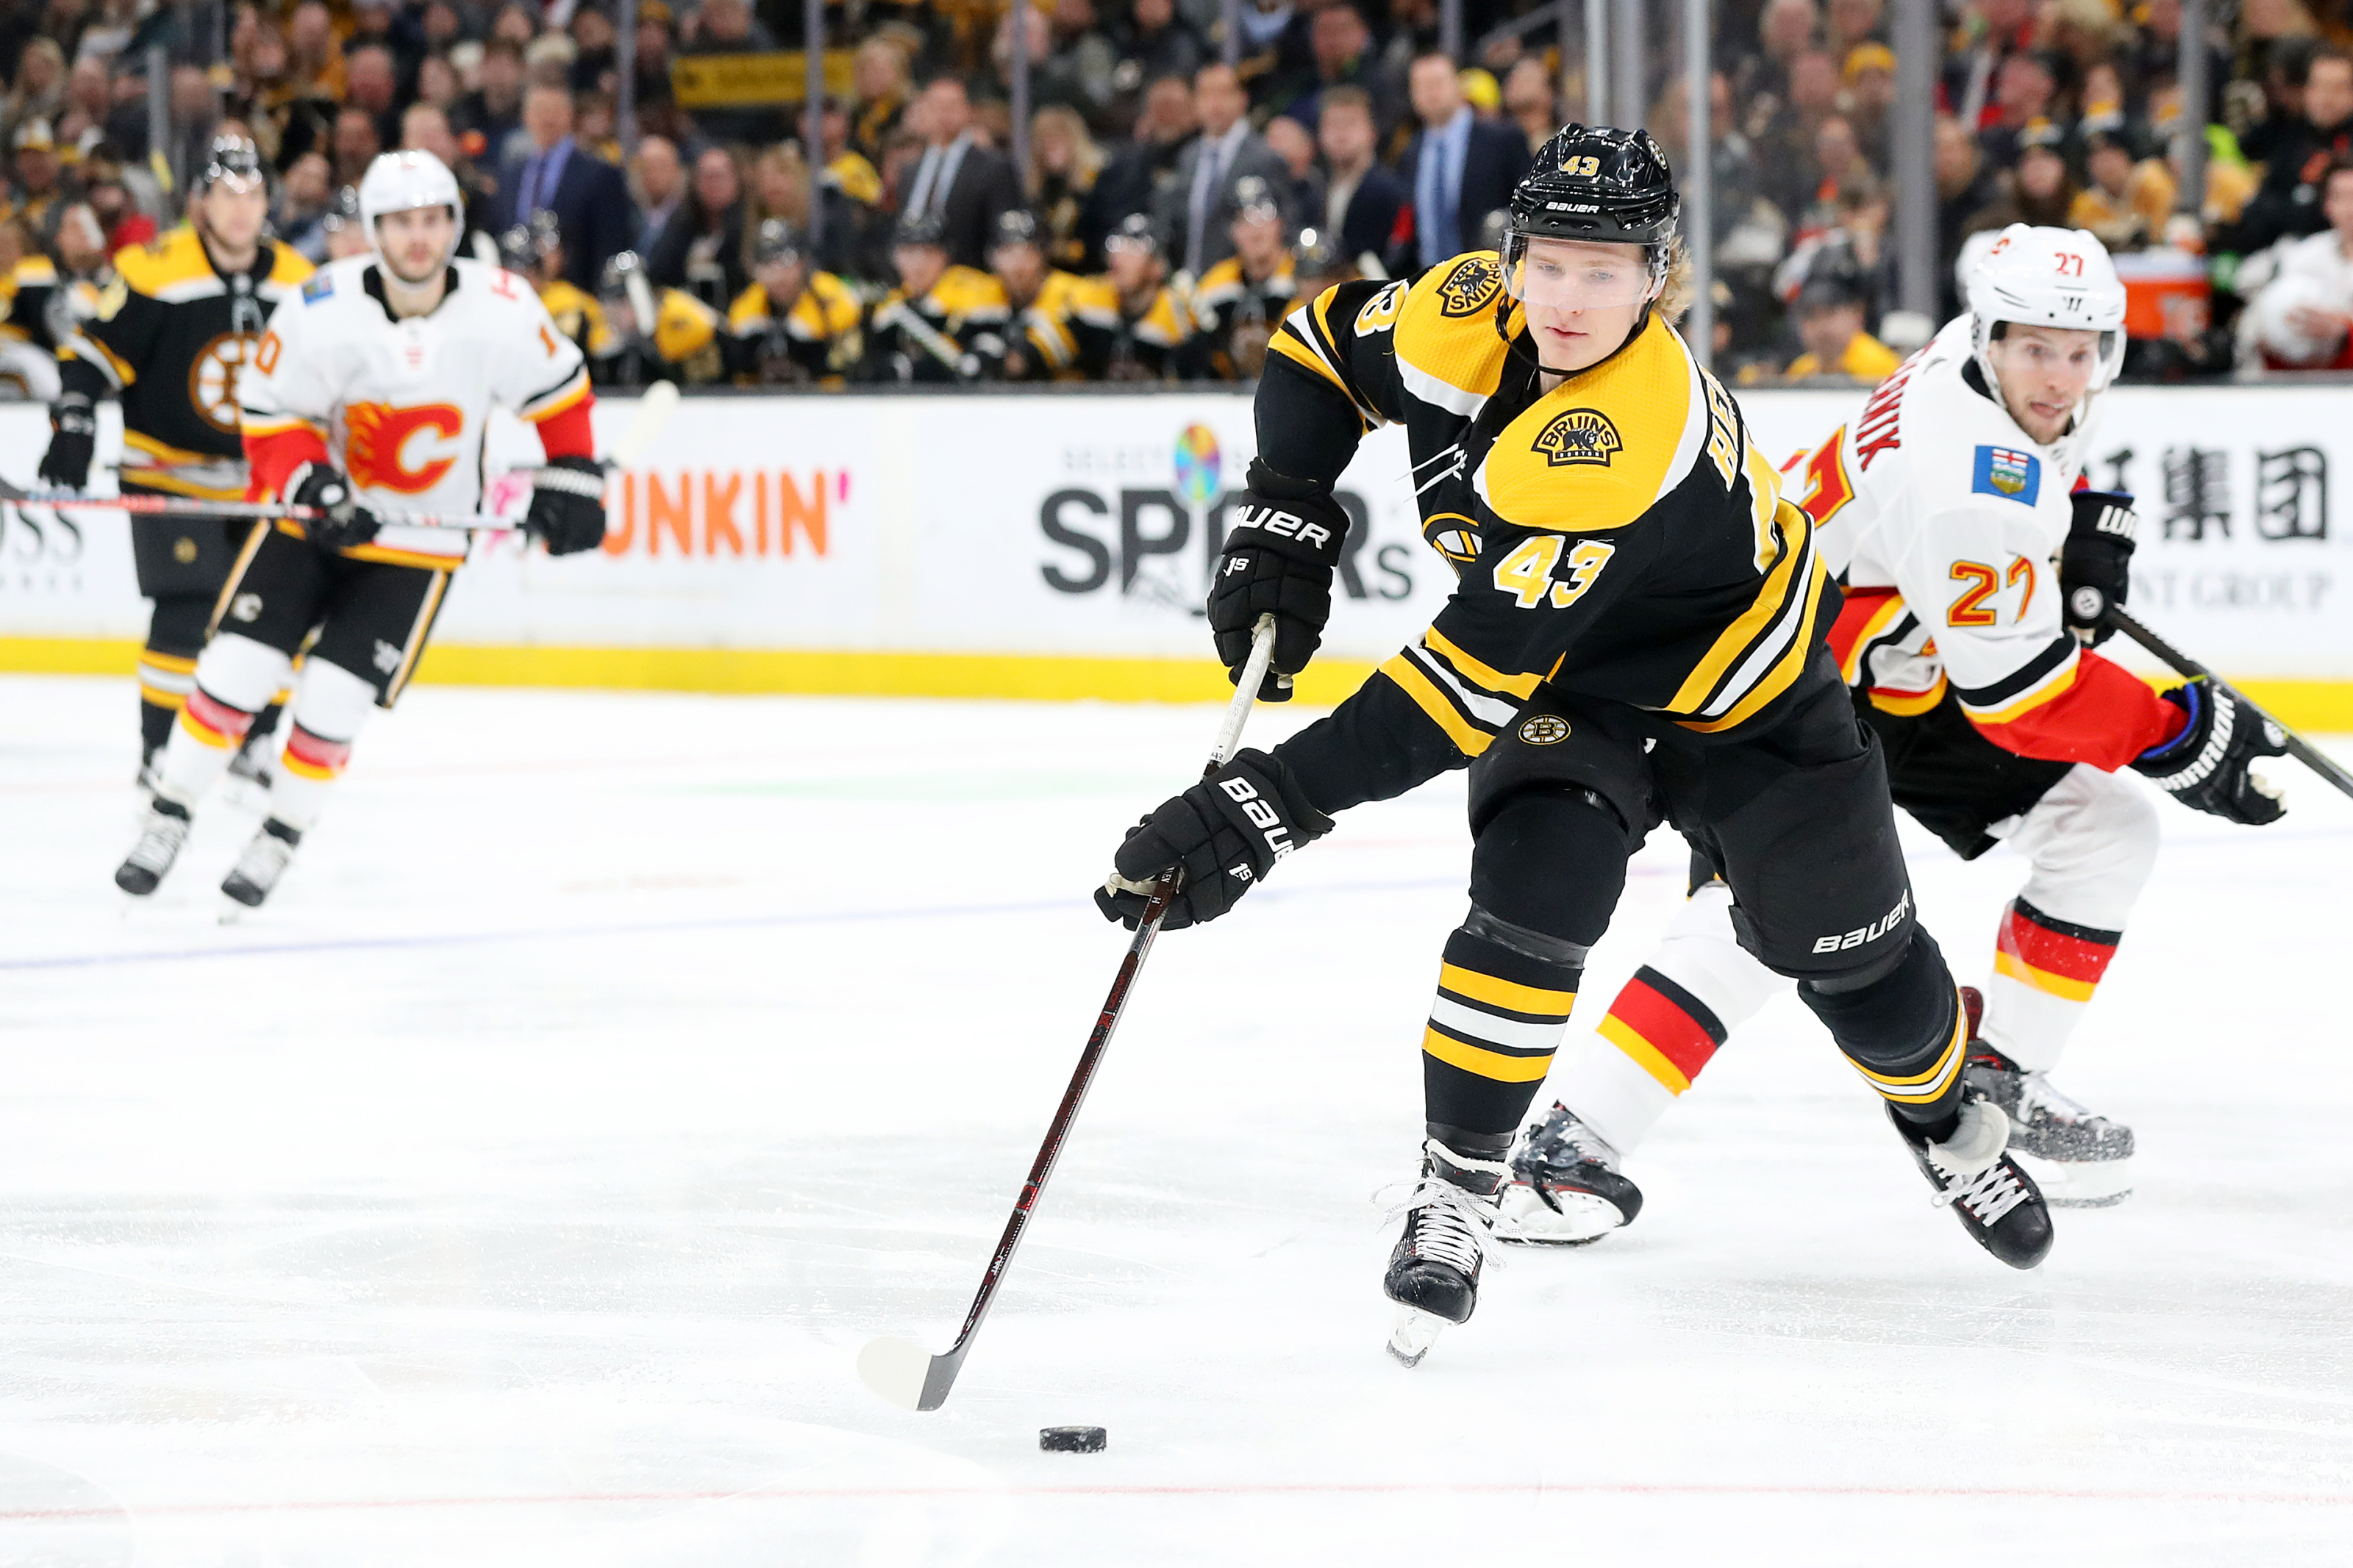 Boston Bruins: The depleted Calgary Flames defense has to be targeted